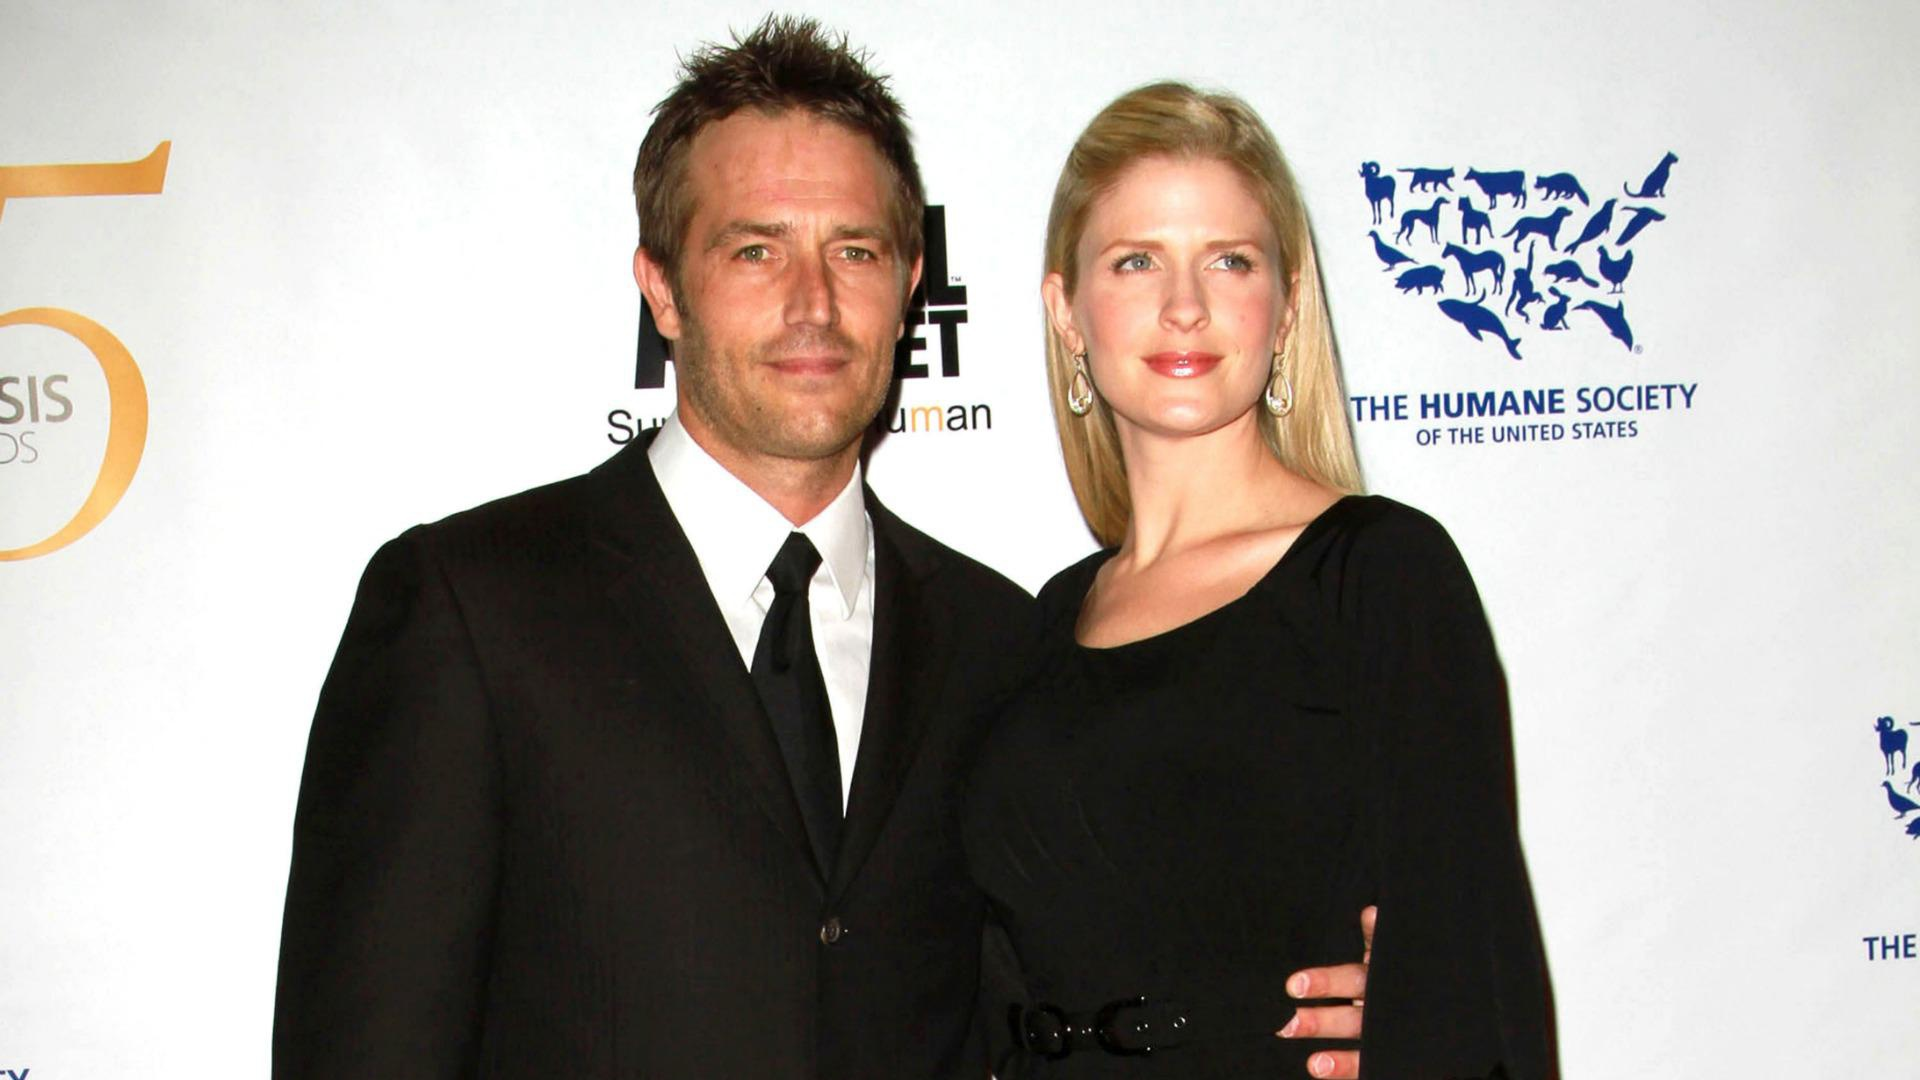 Ouch. Michael Vartan's wife files for divorce